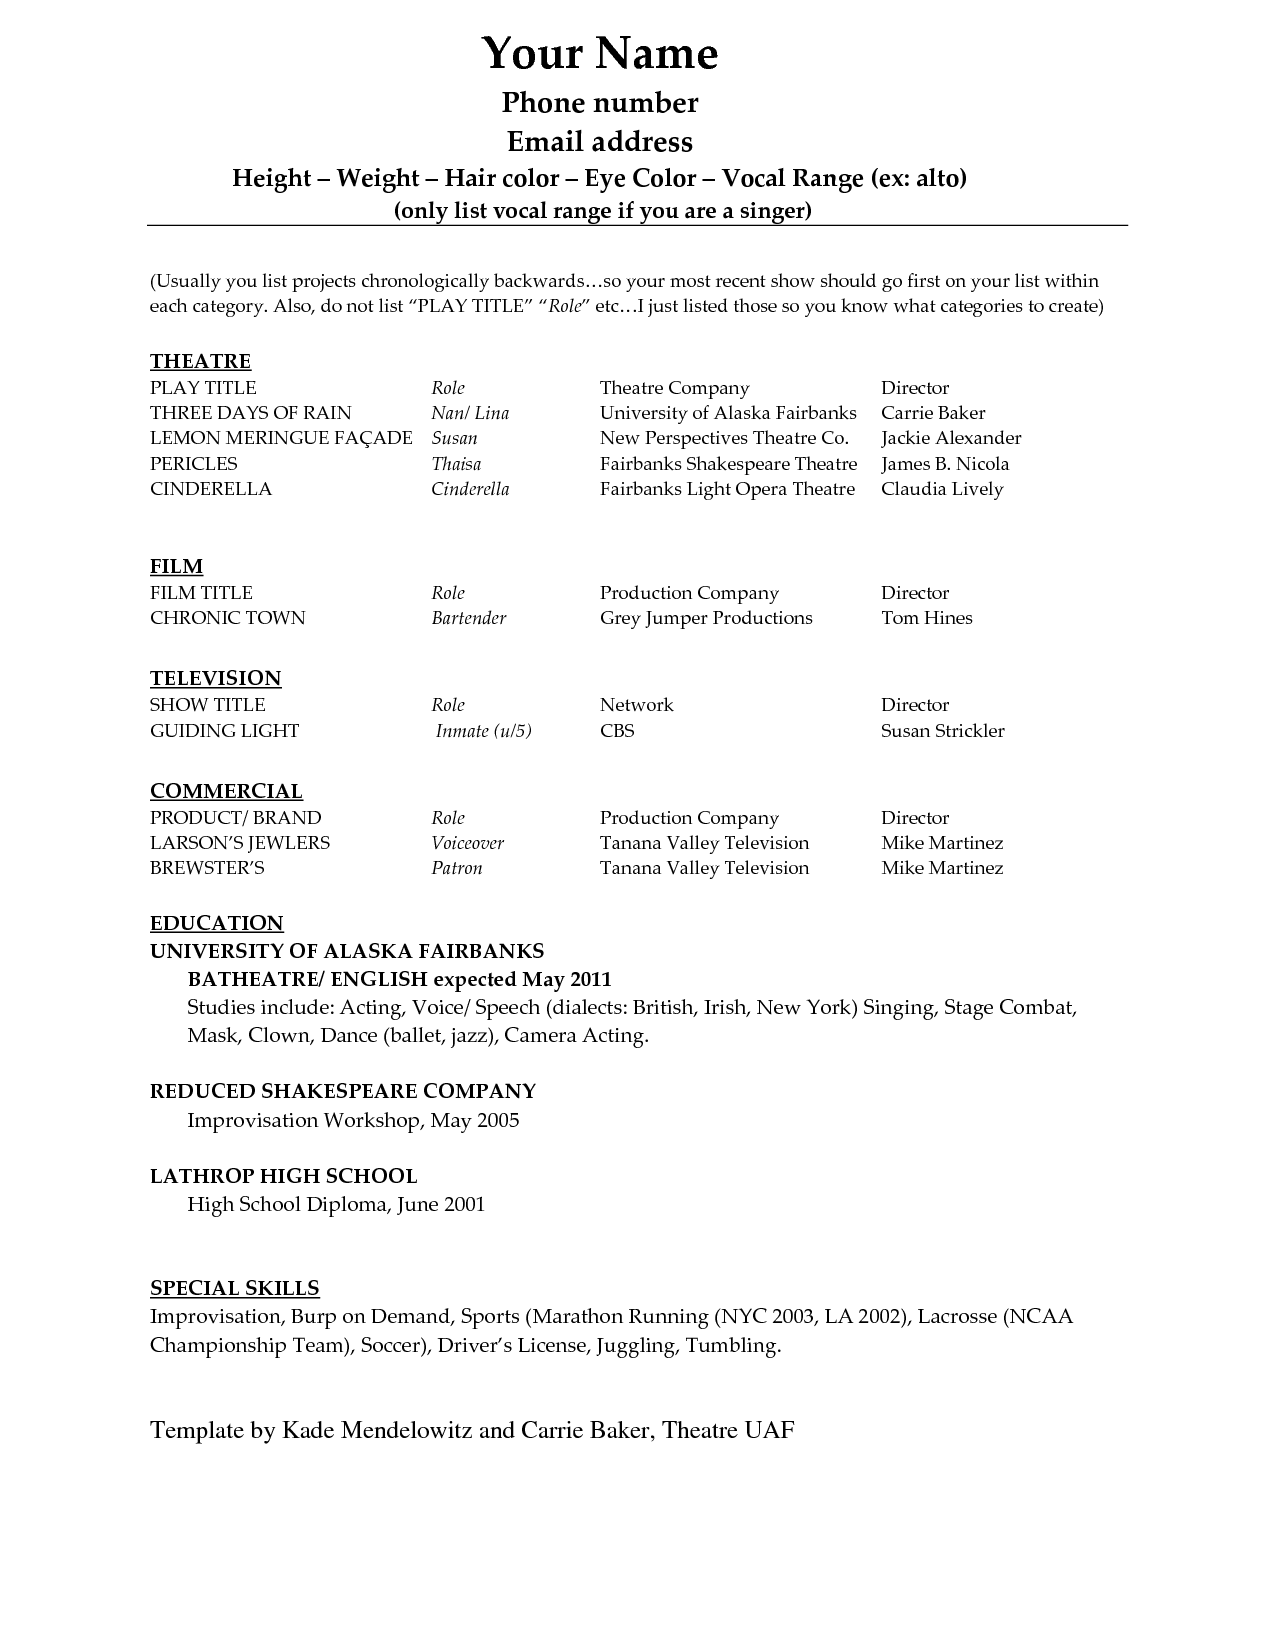 Free Resume Templates Word 2010 Gorgeous Acting Resume Template Download Free  Httpwwwresumecareer